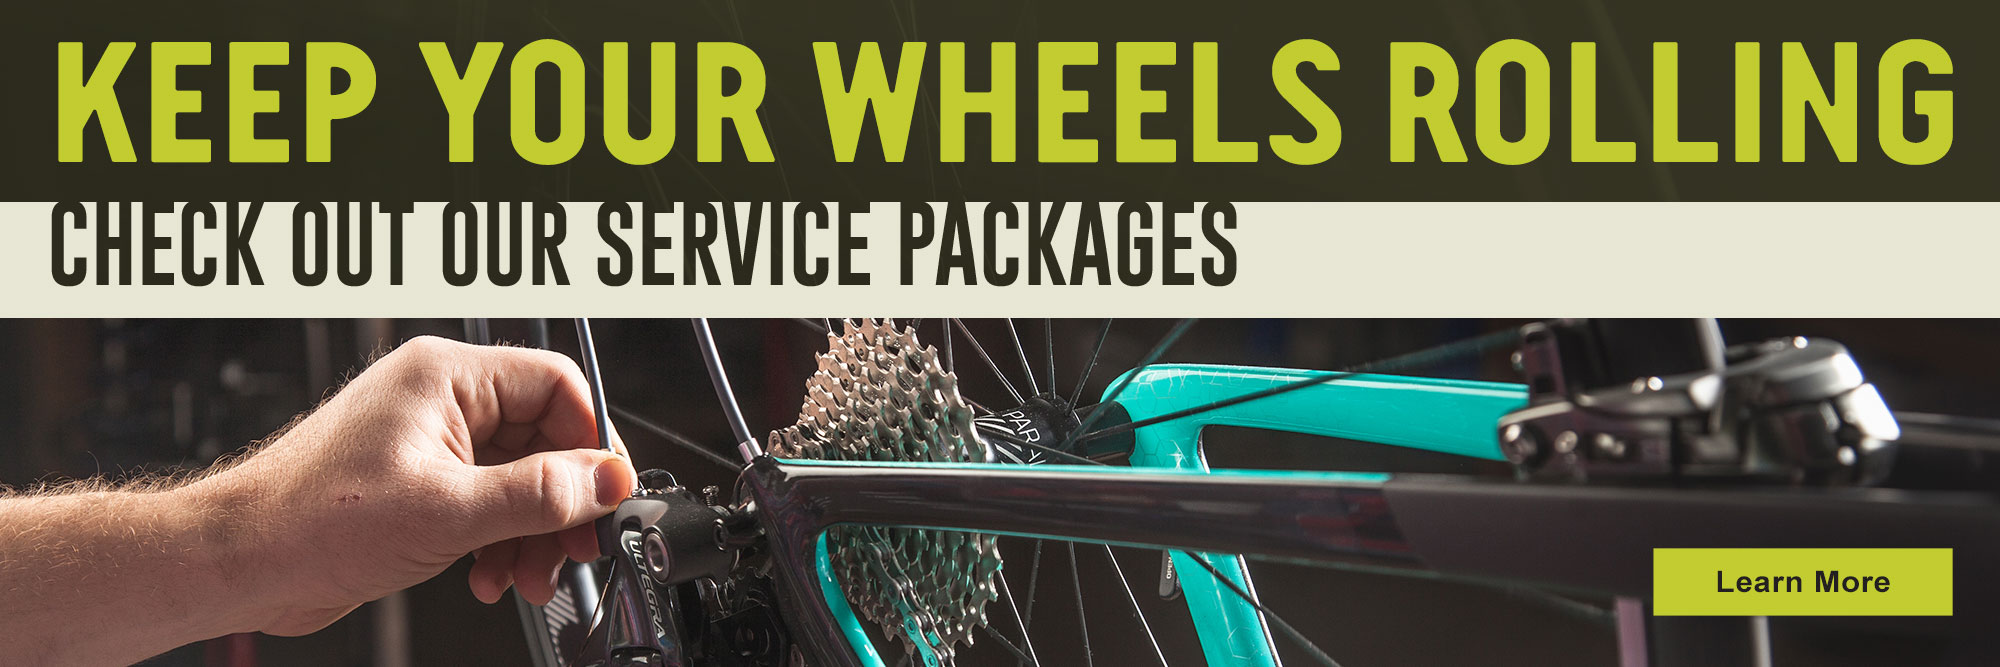 Bike Service at Rudy's Cycle and Fitness